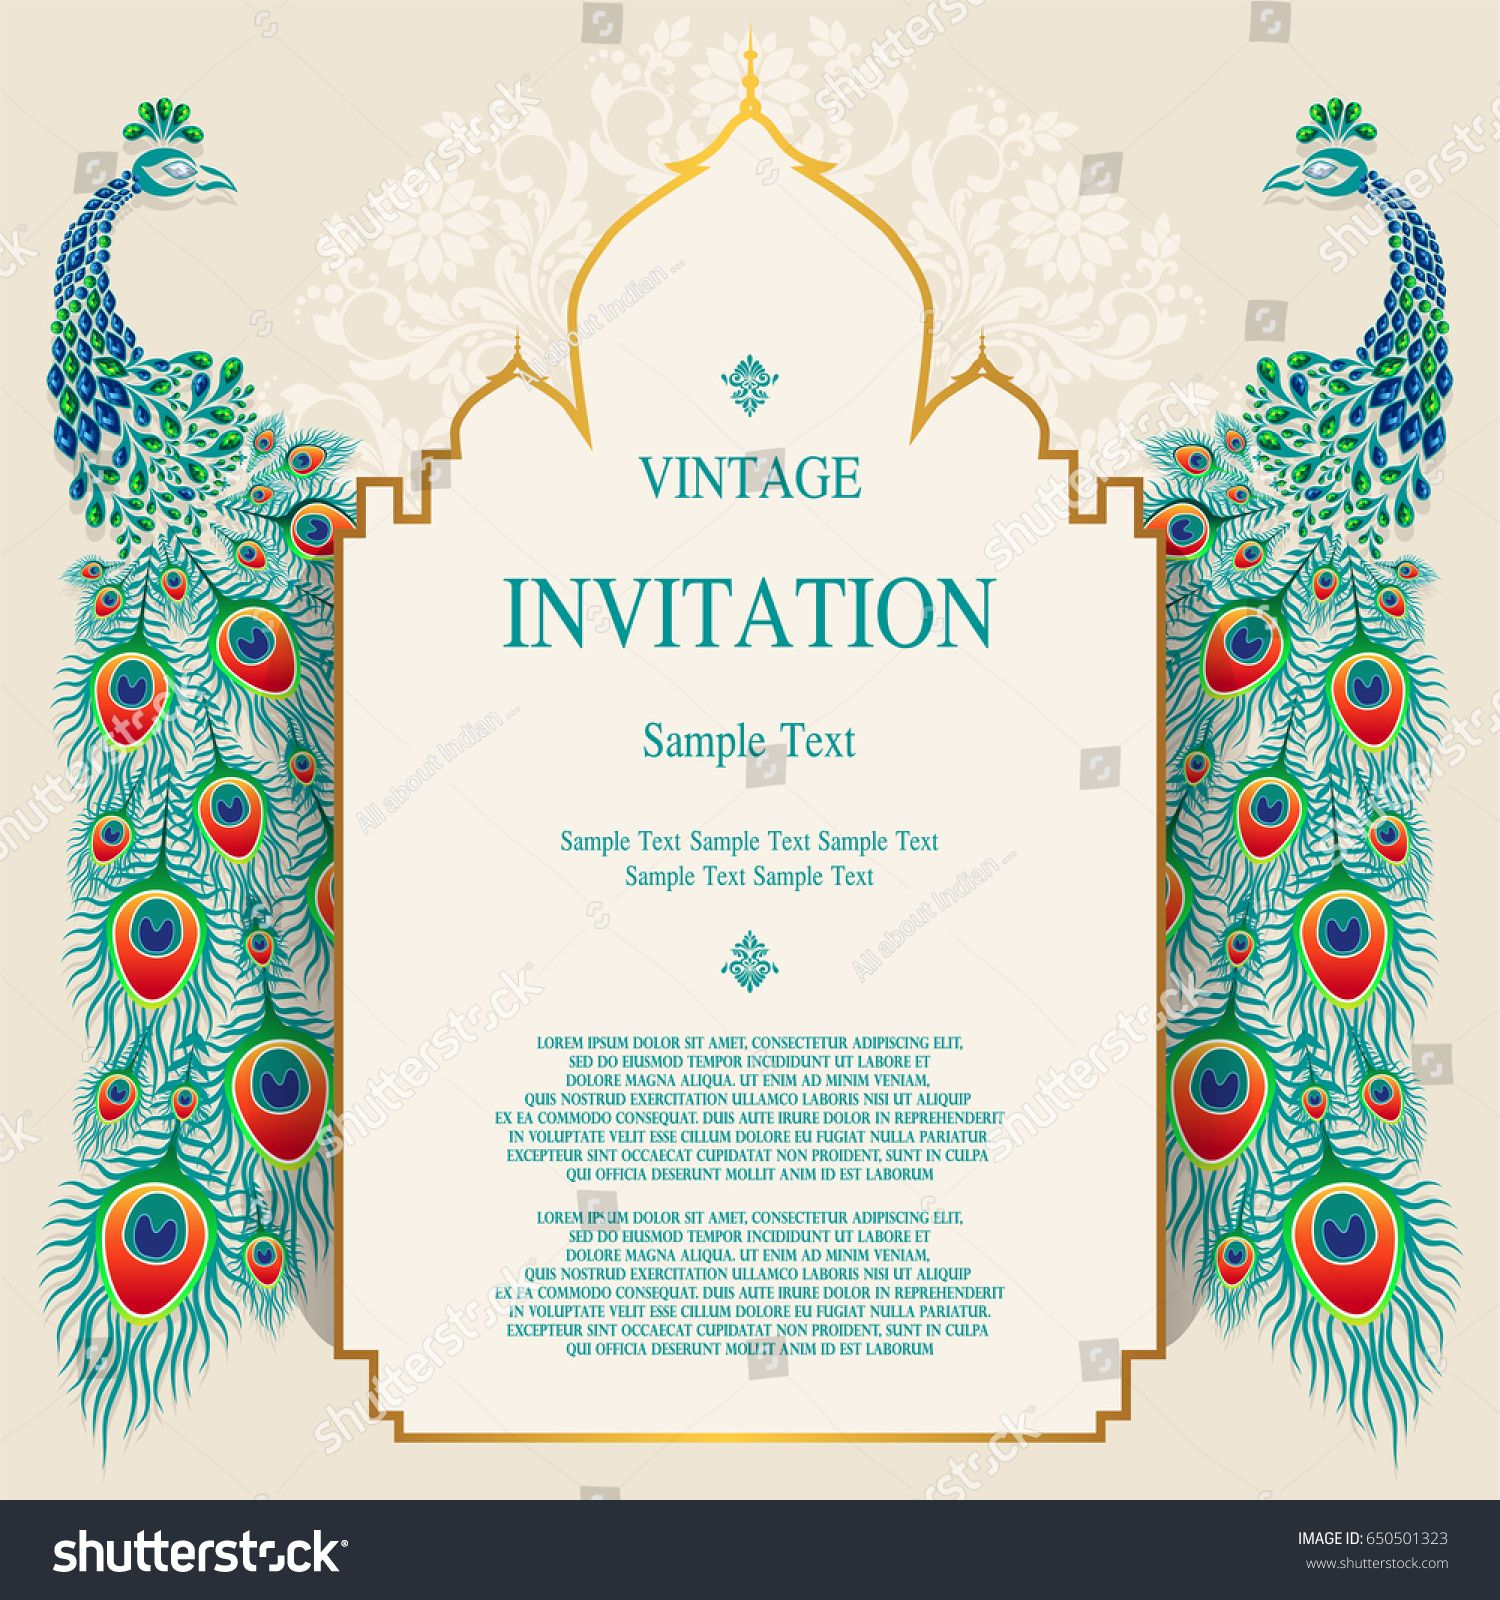 Wedding Invitation Card Templates With Peacock Patterned And